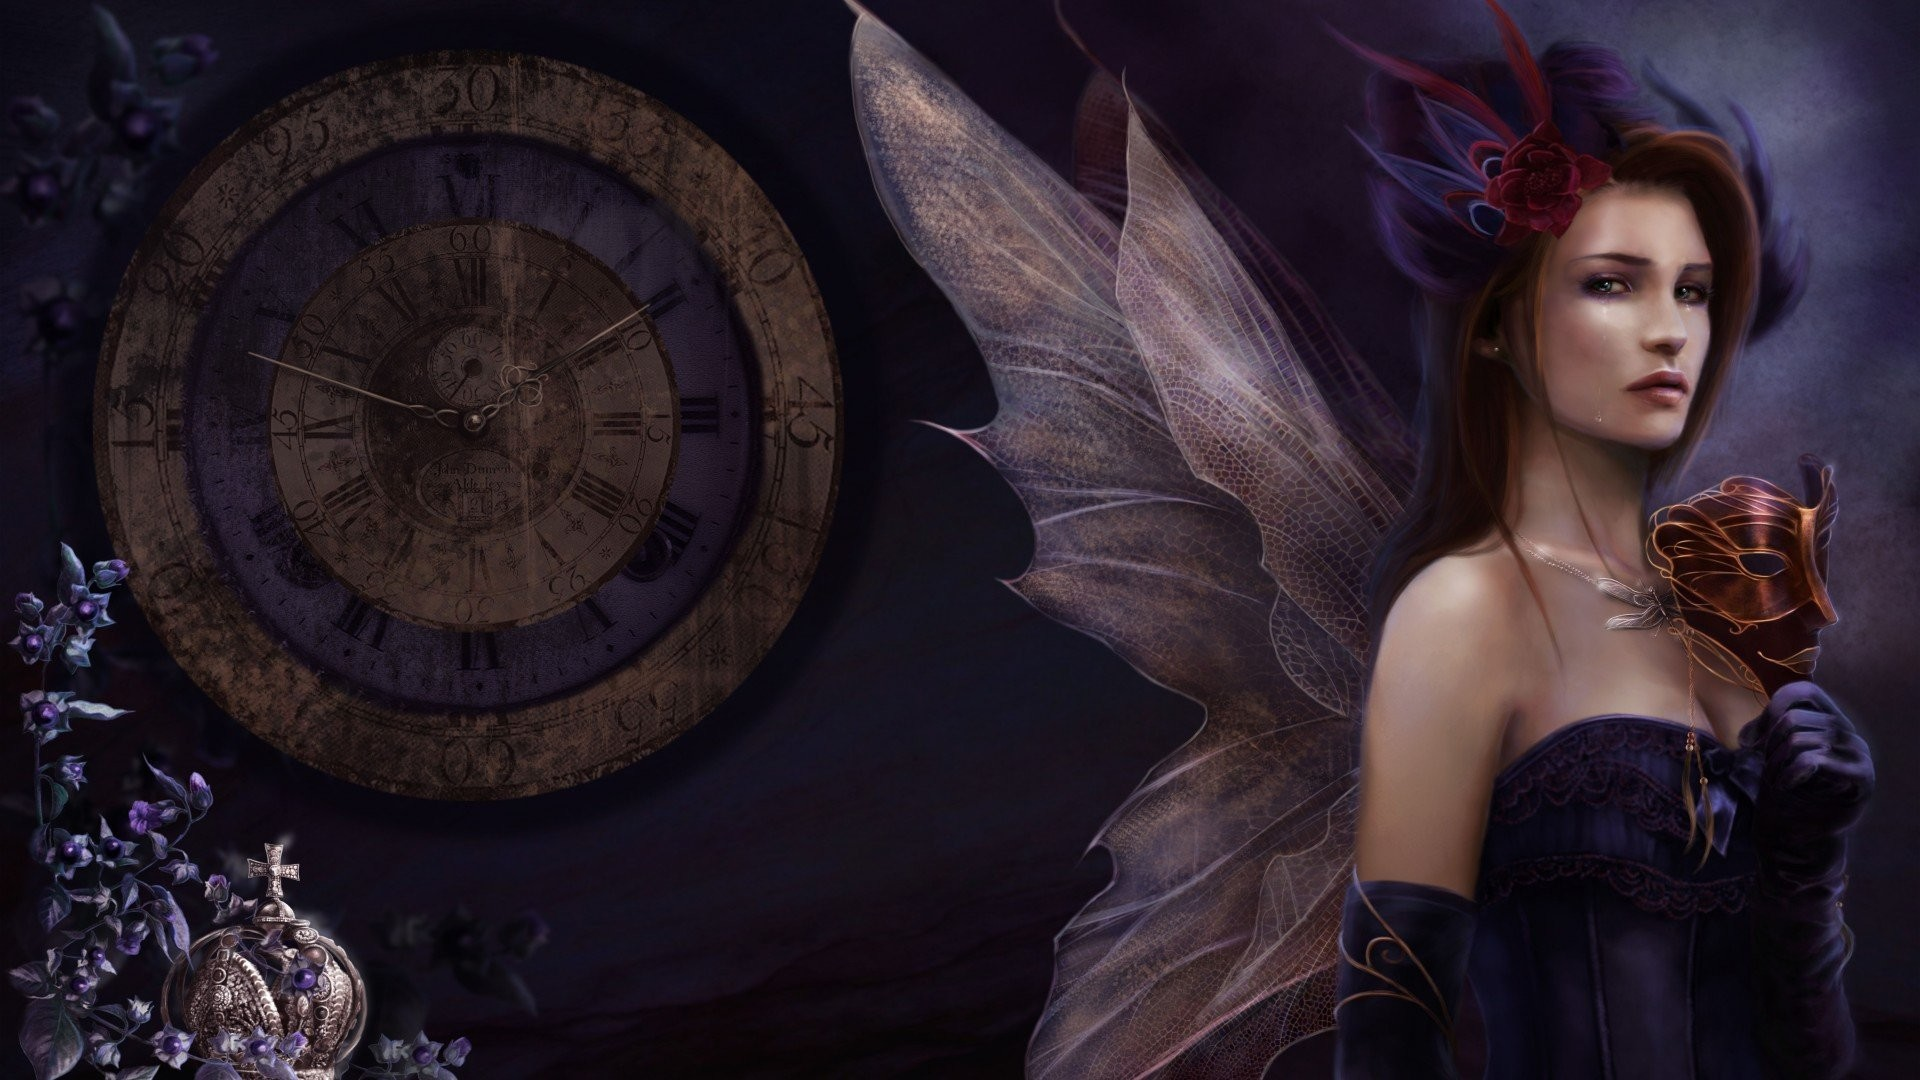 Res: 1920x1080, Download  Fairy Gothic HD Wallpapers for Free | NM.